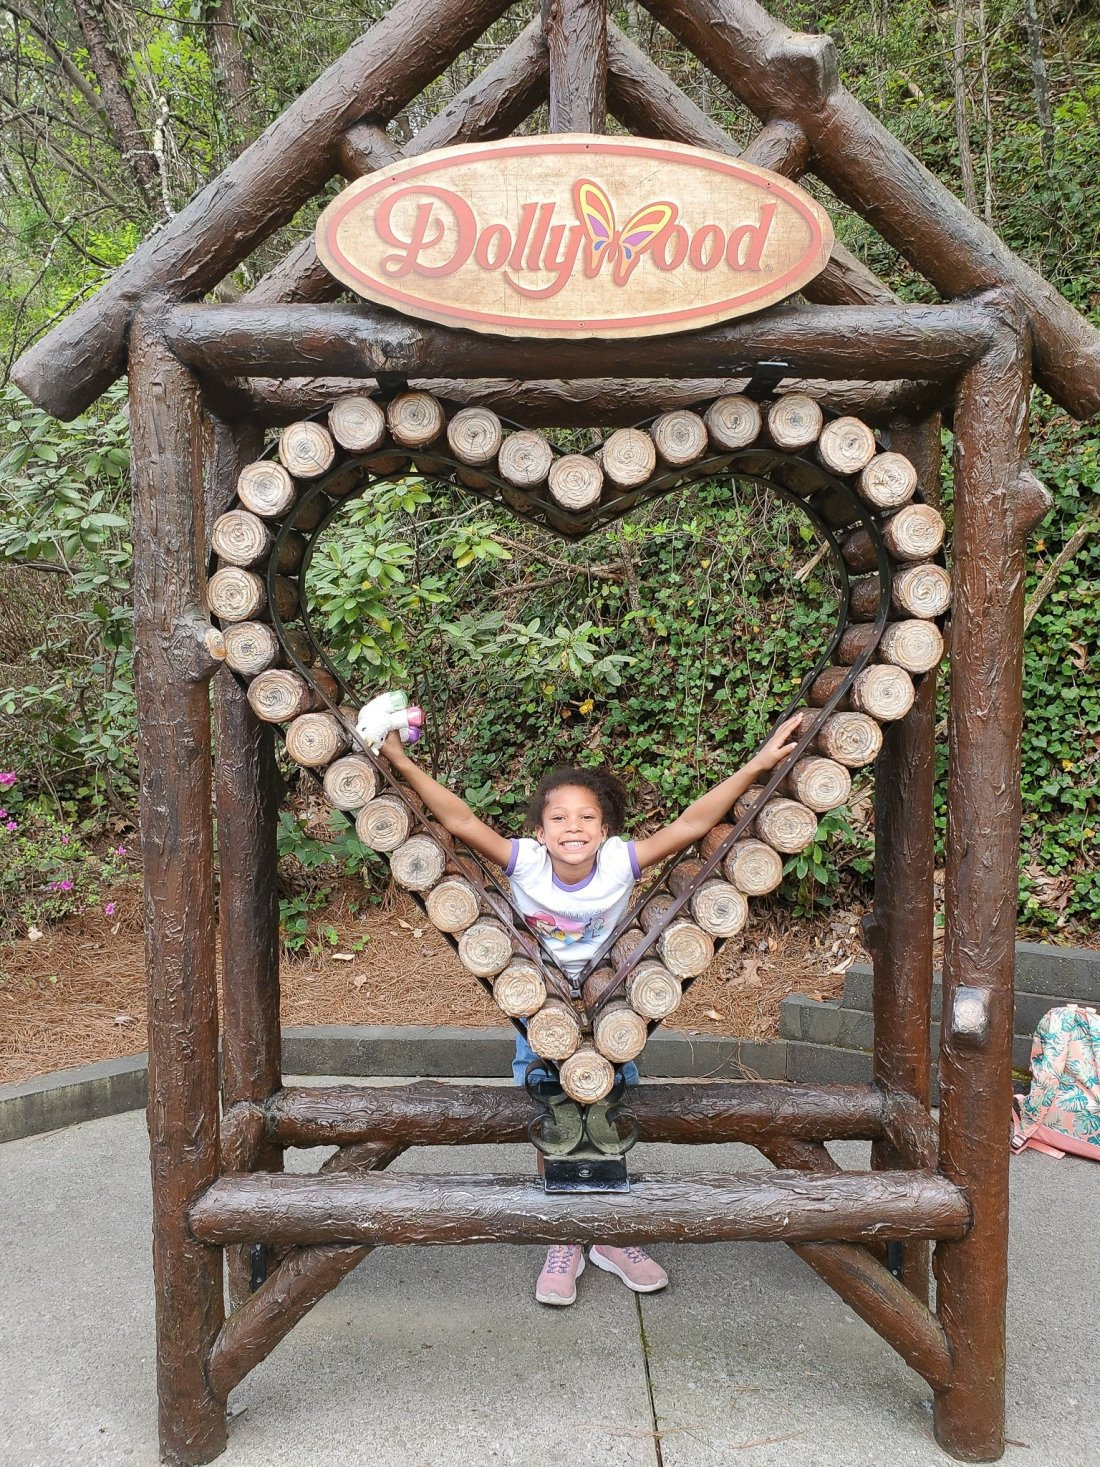 Dollywood Esuun. My family spent the day playing and eating at the Dollywood theme park, and we are happy to report we had a blast! Read all about our trip and learn why Dollwood is a must visit destination while you are in Pigeon Forge, TN.